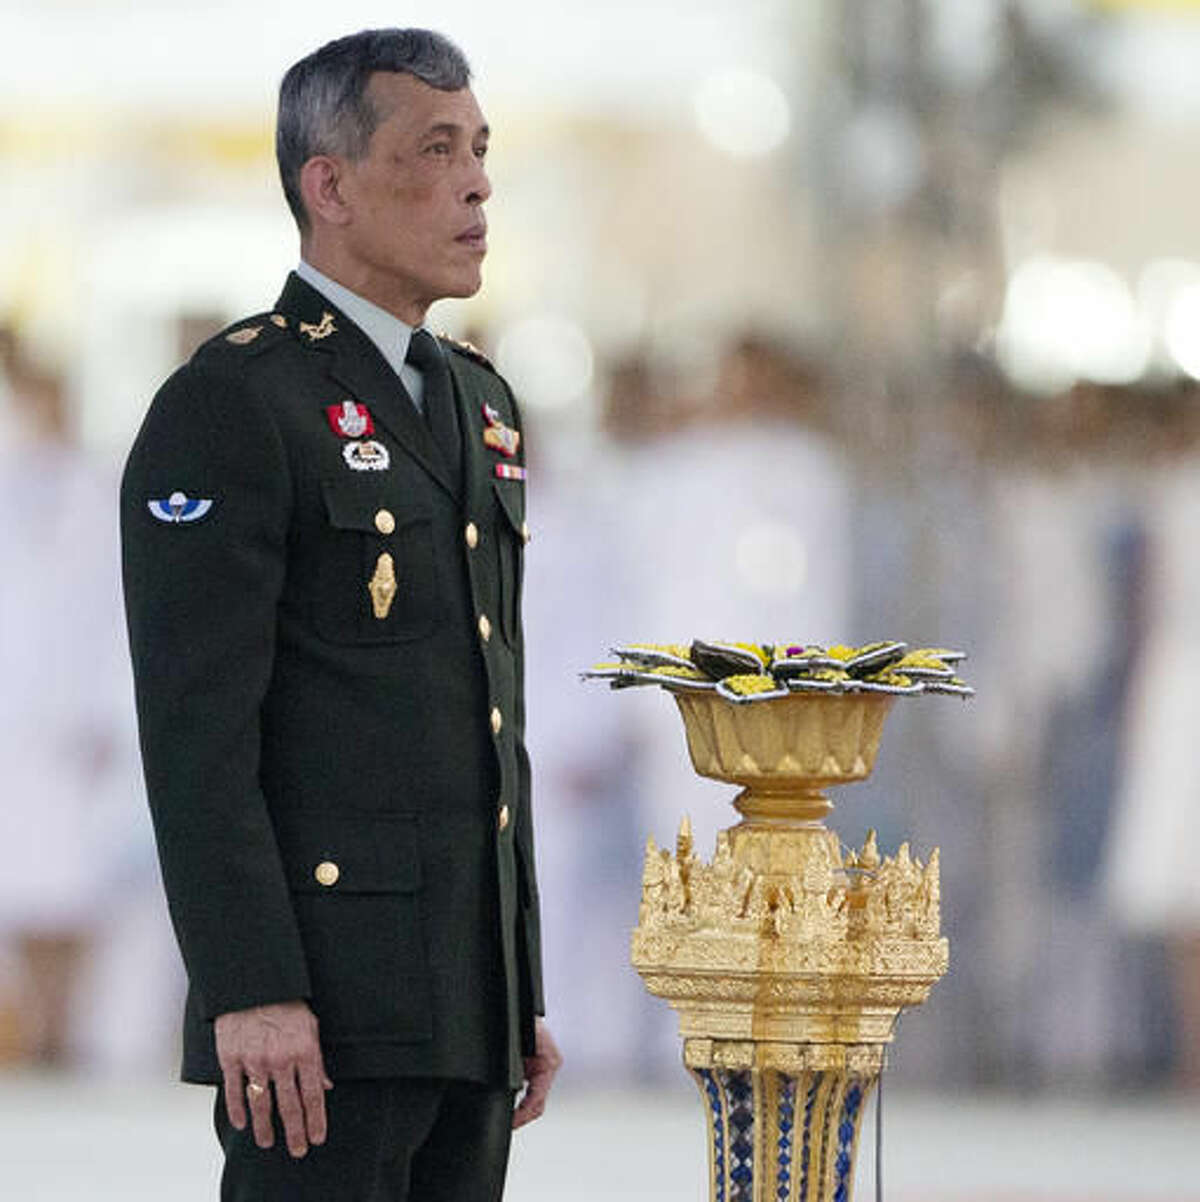 FILE - In this Sept. 26, 2015, file photo, Thailand's Crown Prince Vajiralongkorn hosts a ceremony at the official opening of Ratchapakdi Park in Hua Hin, 240 kilometers (150 miles) south of Bangkok. Thailand's parliament has started the process of naming Crown Prince Vajiralongkorn the new king following the death of his father, Bhumibol Adulyadej, last month. Completing a formality, the Cabinet submitted Vajiralongkorn's name to the National Assembly on Tuesday after a brief meeting. (AP Photo/Mark Baker, File)